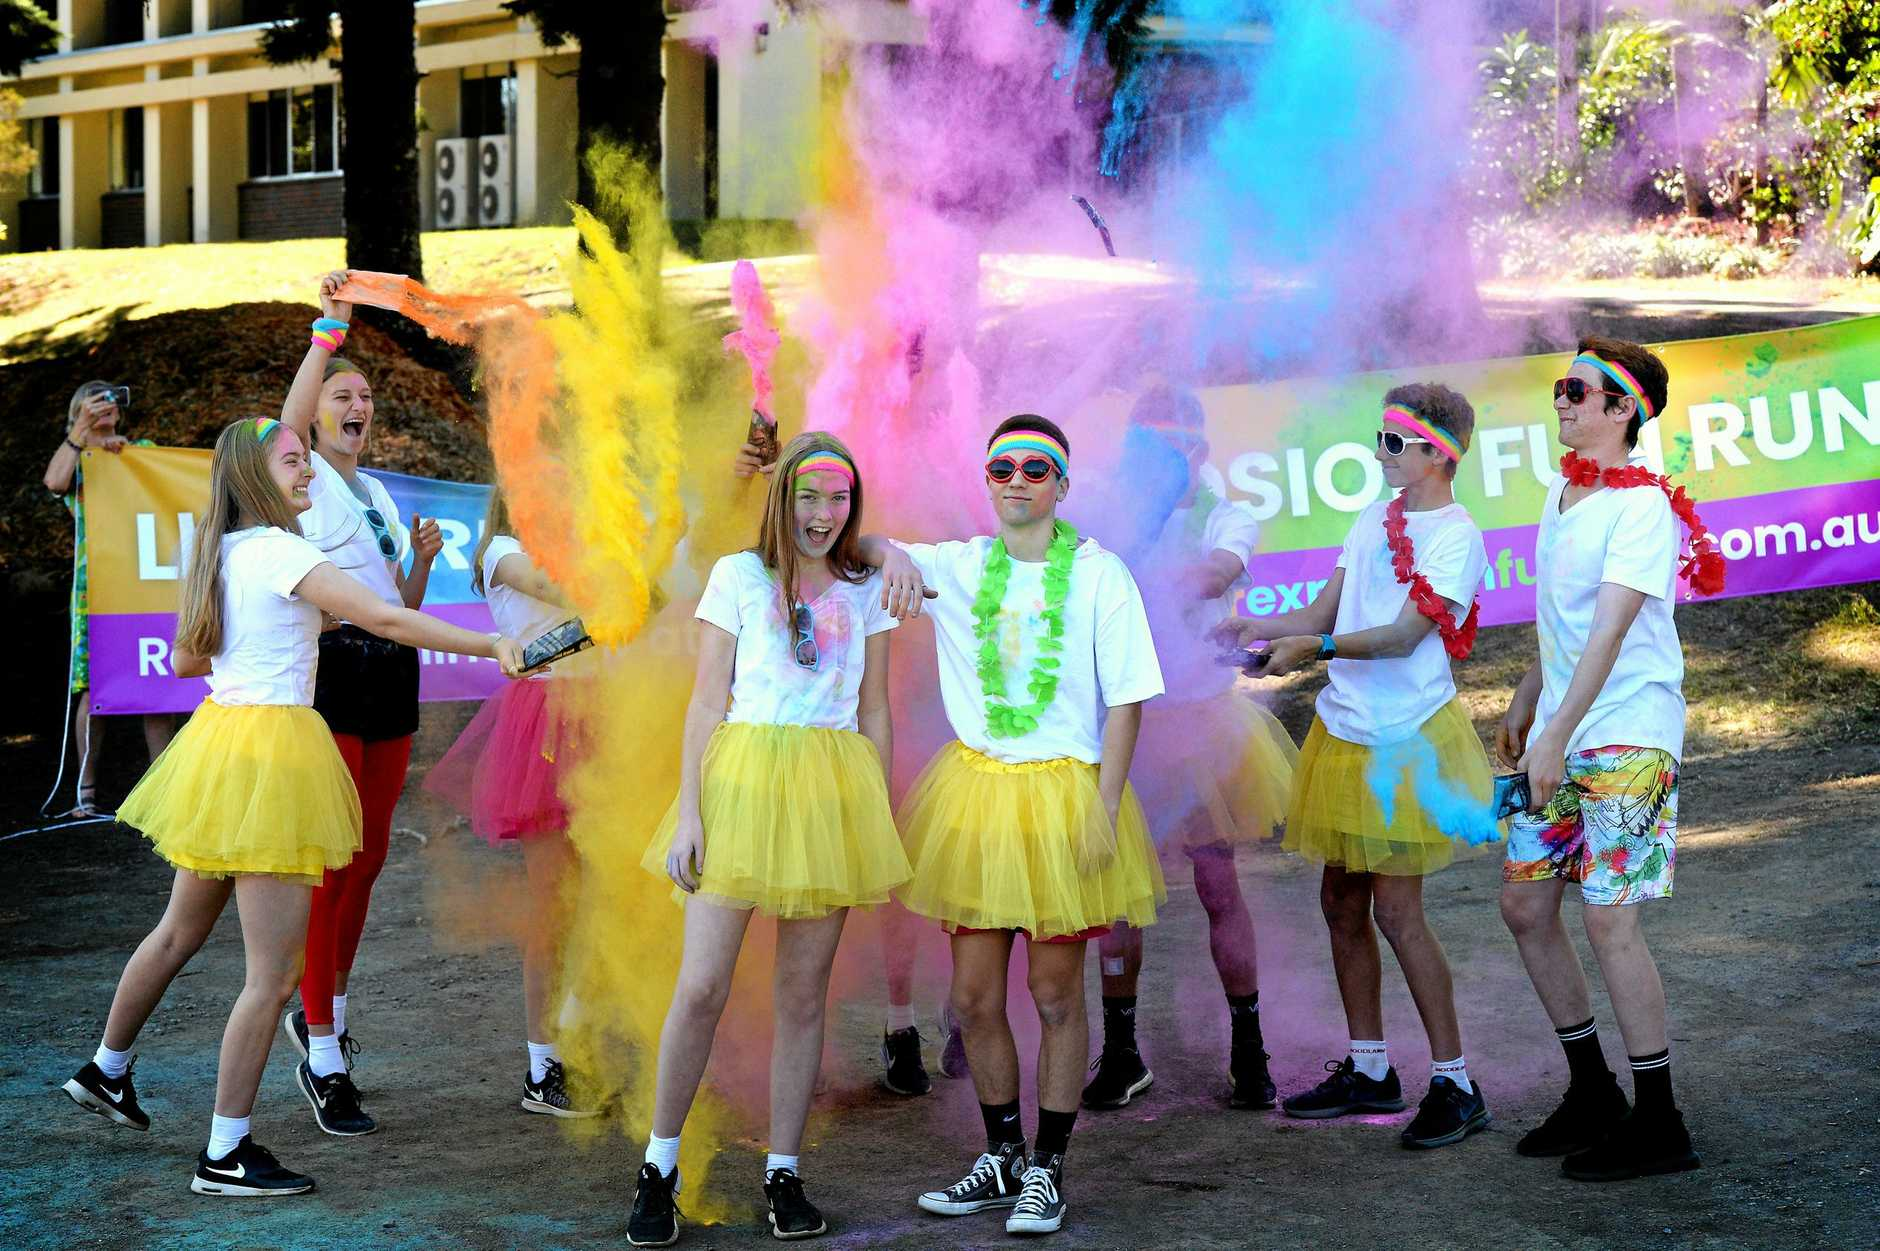 EXPLOSION: Lismore school students Mimi O'Reilly, 13, and Jackson Cheong, 15, with other students ahead of the 2018 Lismore Colour Explosion Fun Run.